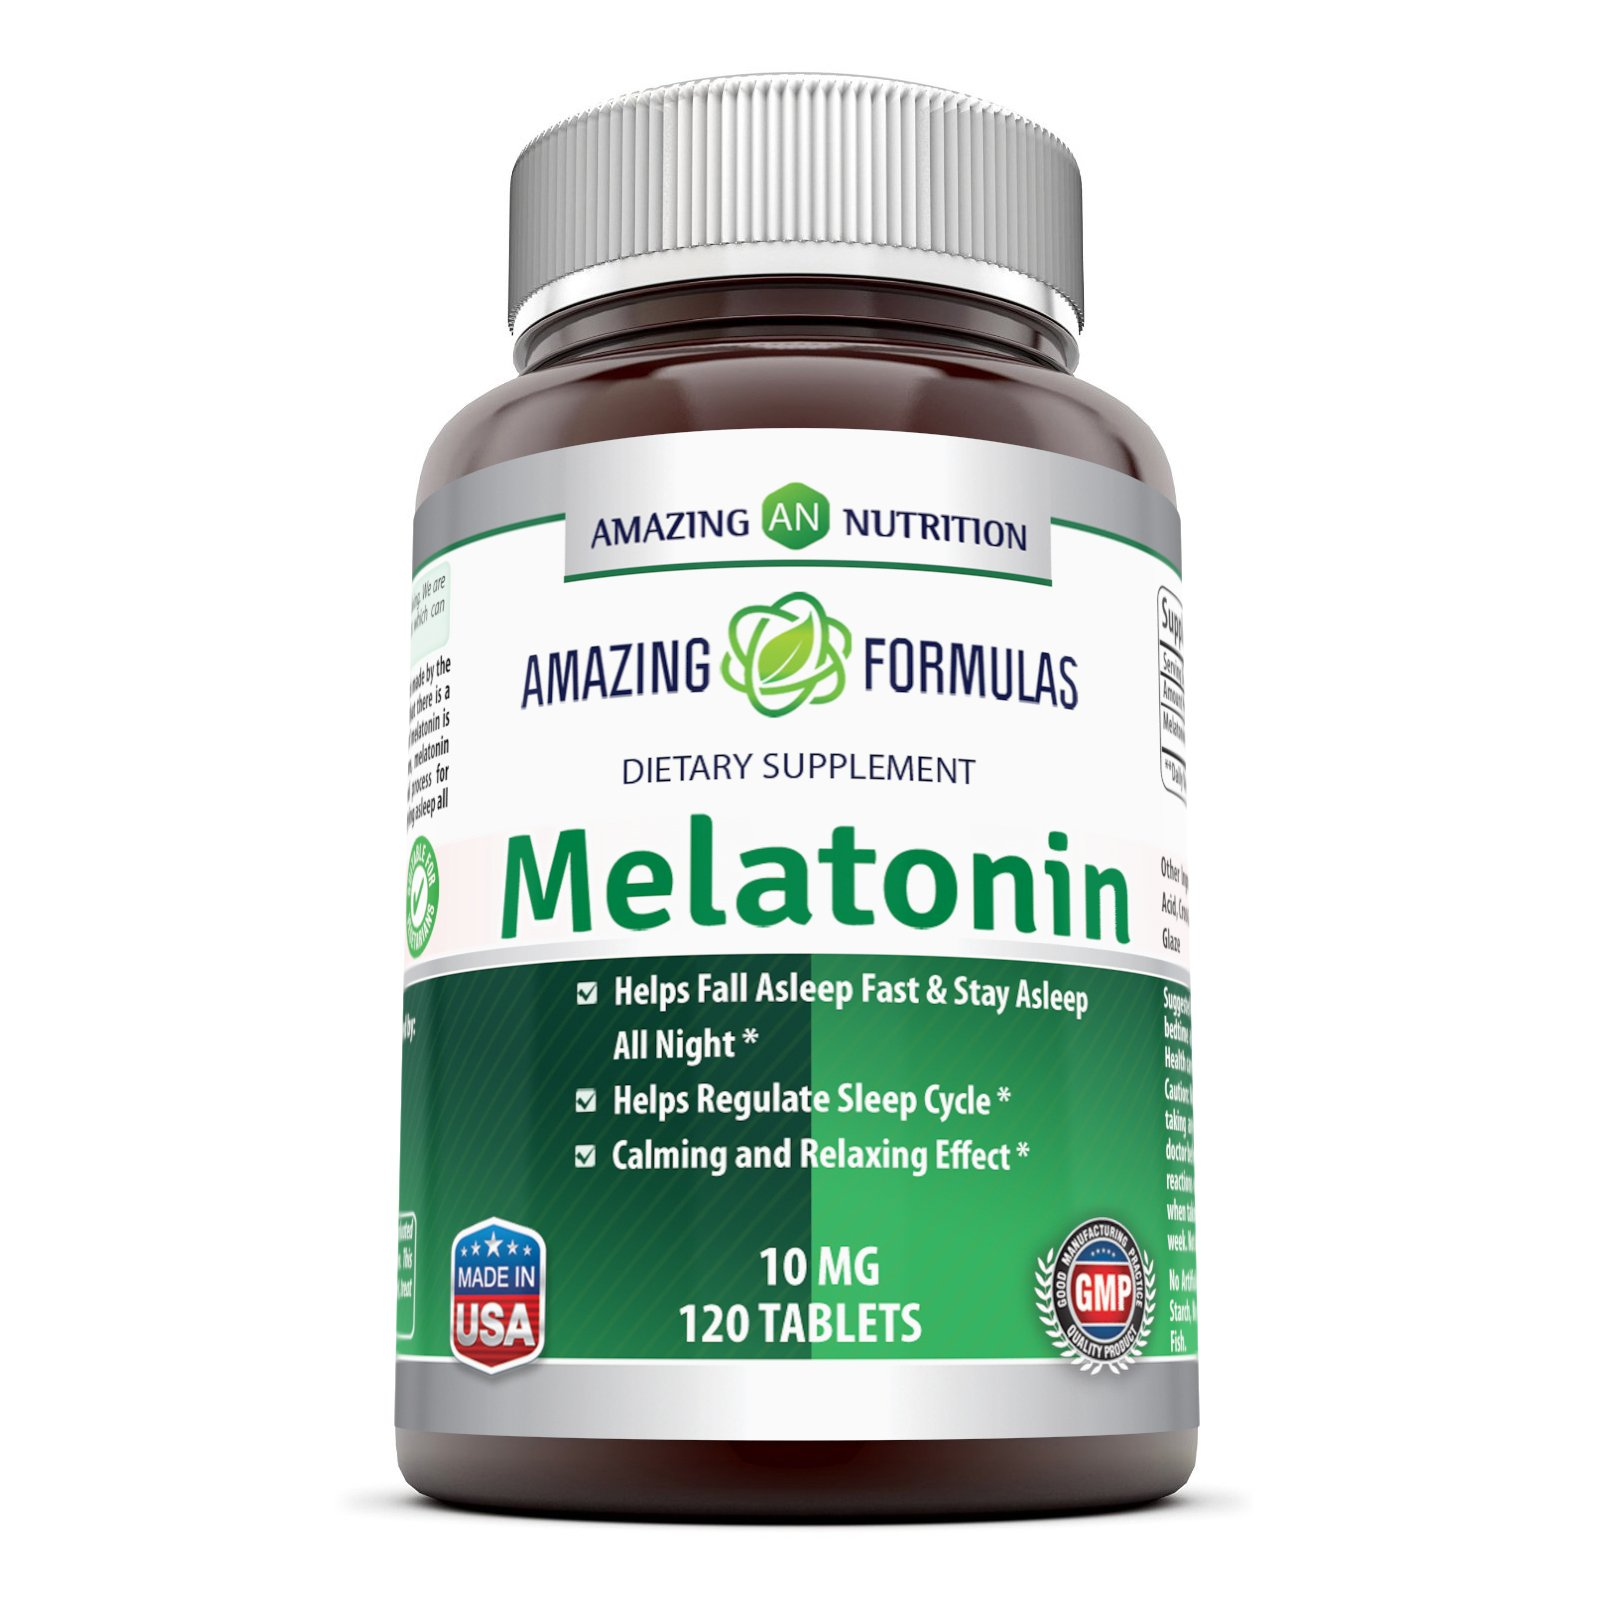 Amazing Nutrition Melatonin for Relaxation and Sleep, 10 Mg, 120 Tablets